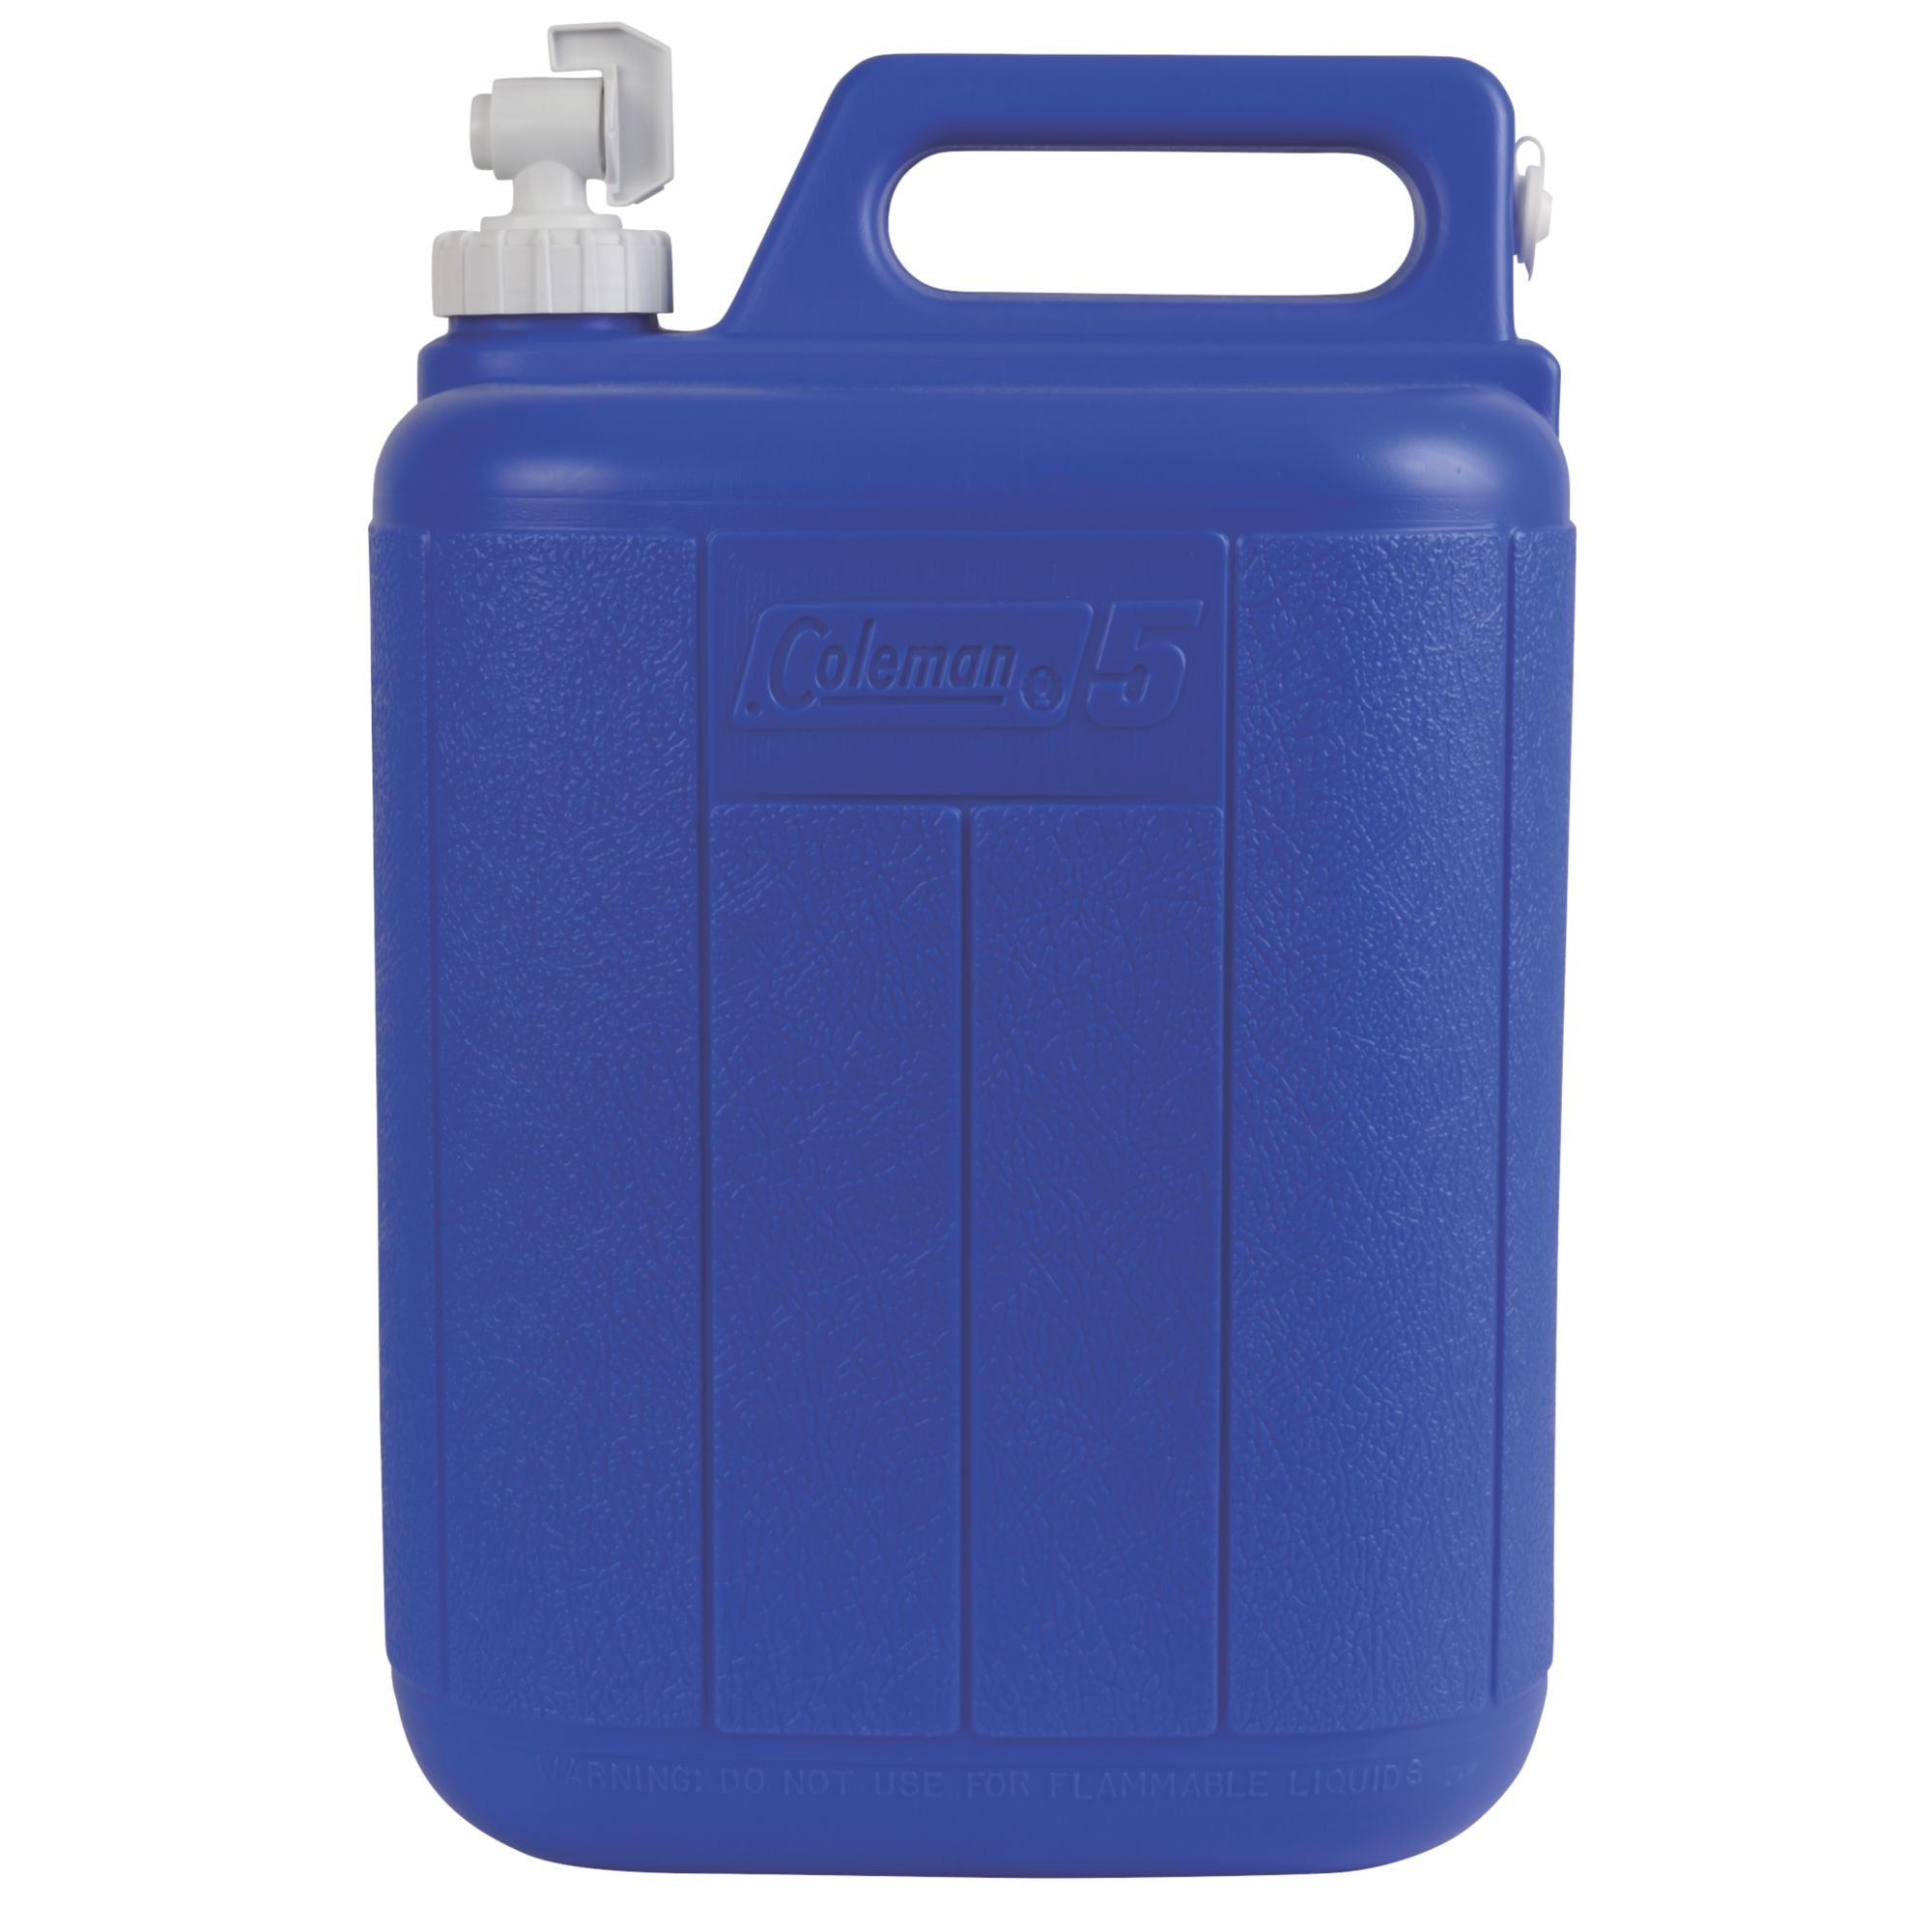 Coleman Water Carrier (Blue) - Ayudh Sports LLP  - 3